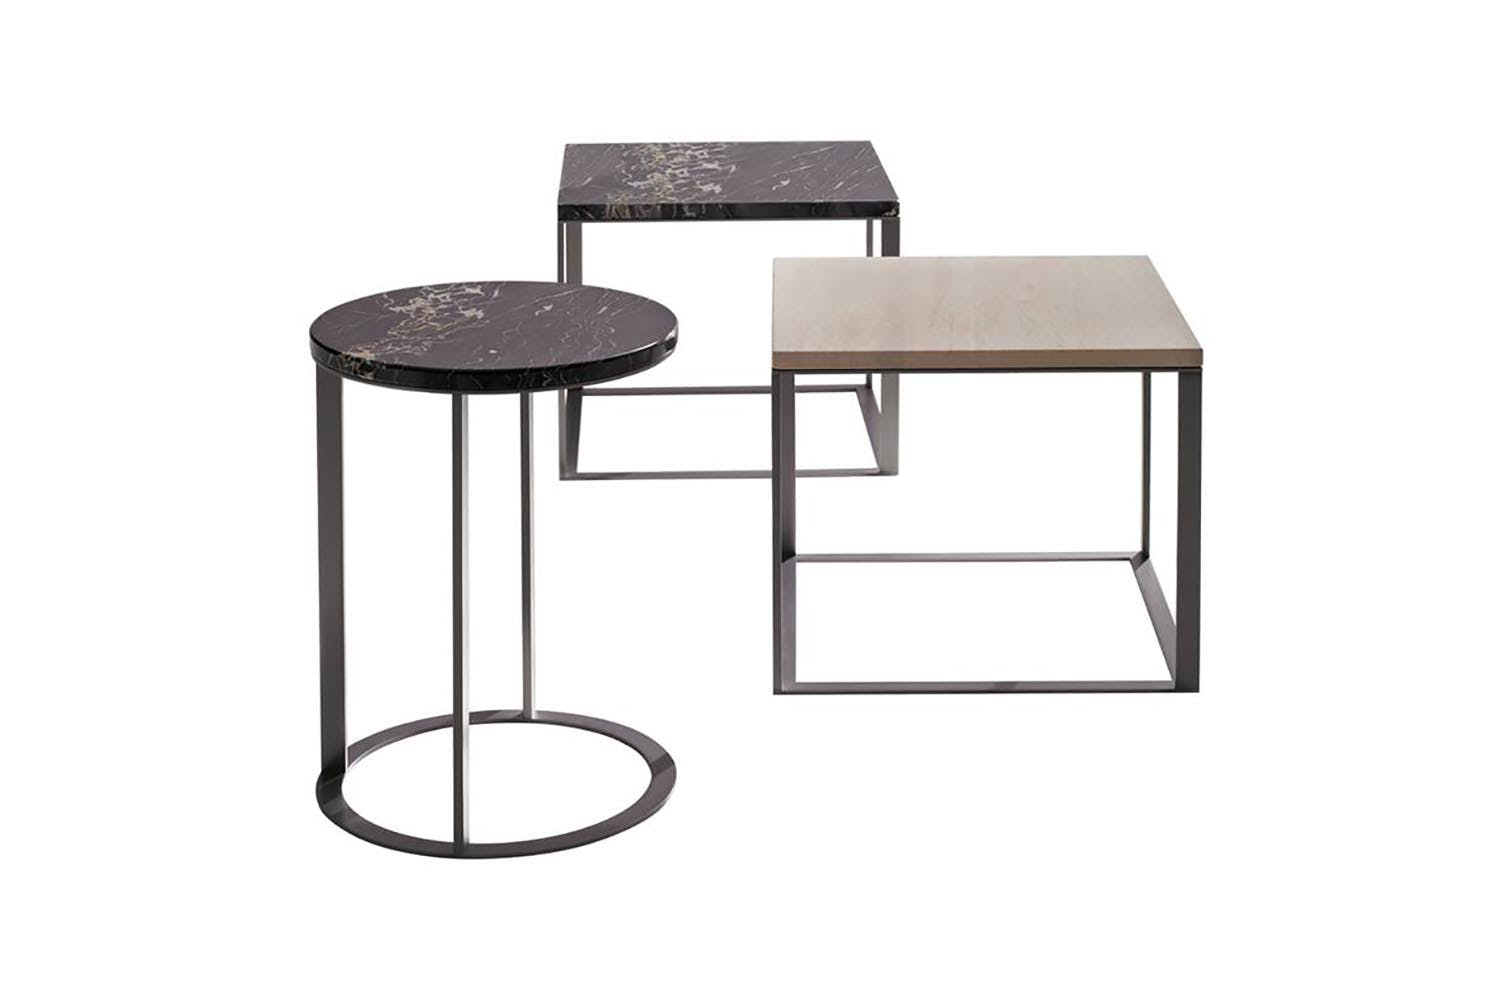 Lithos side coffee table by antonio citterio for maxalto space furniture Side and coffee tables